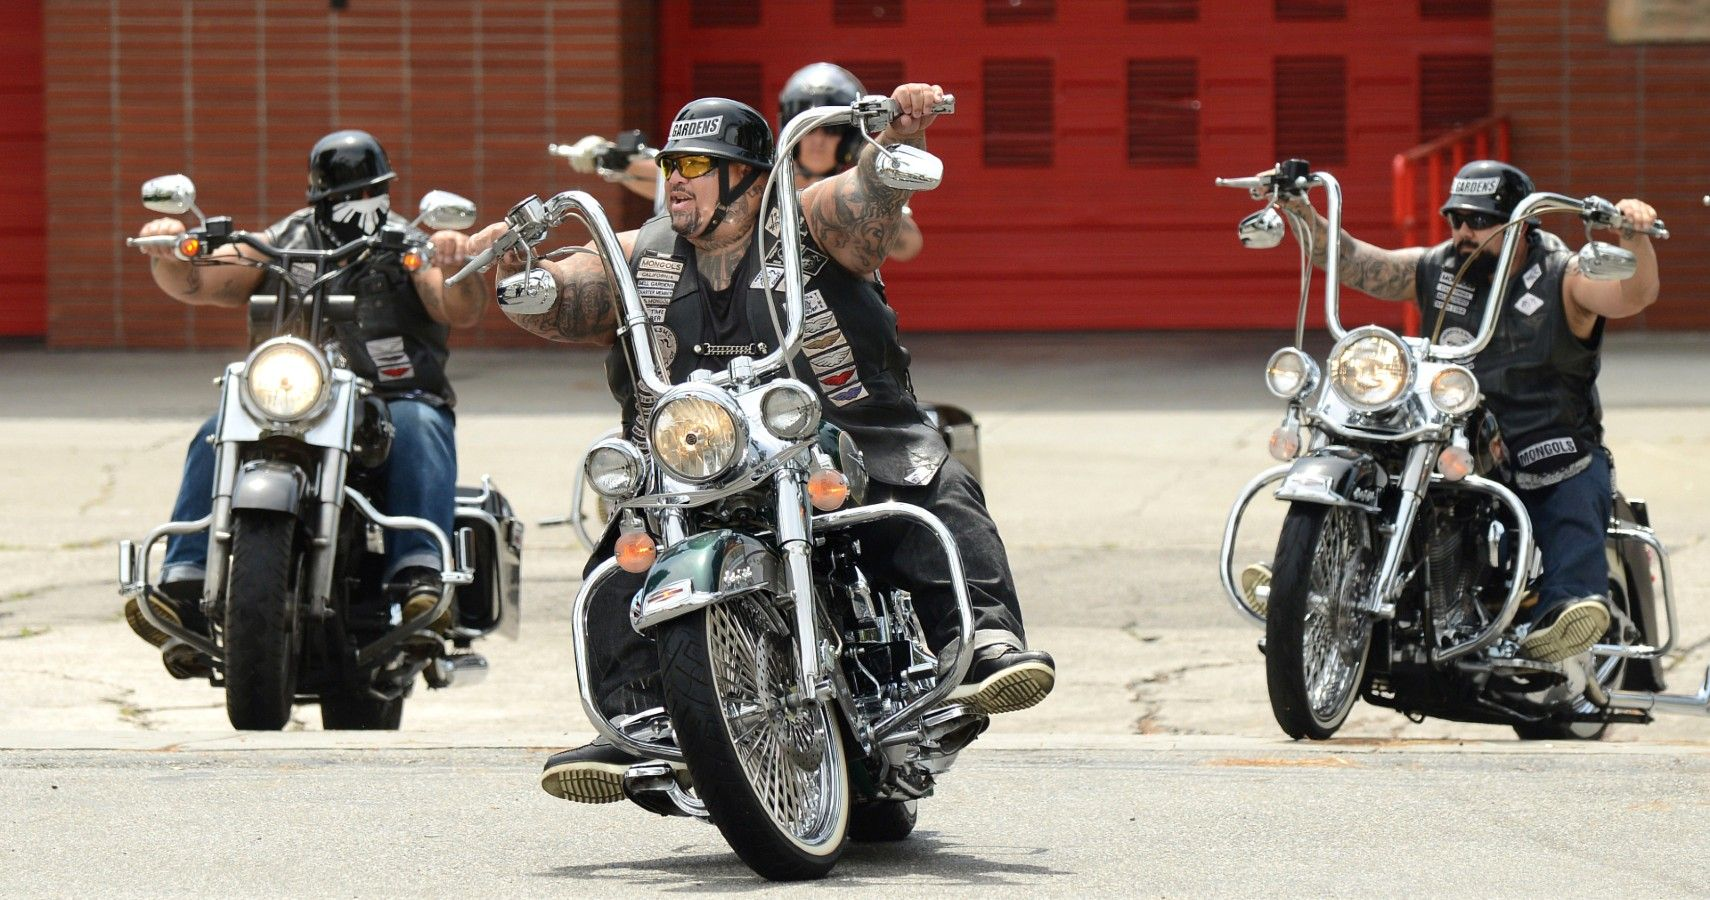 Here's Why Law-Abiding Motorcycle Clubs May Clash With Outlaw Motorcycle Clubs